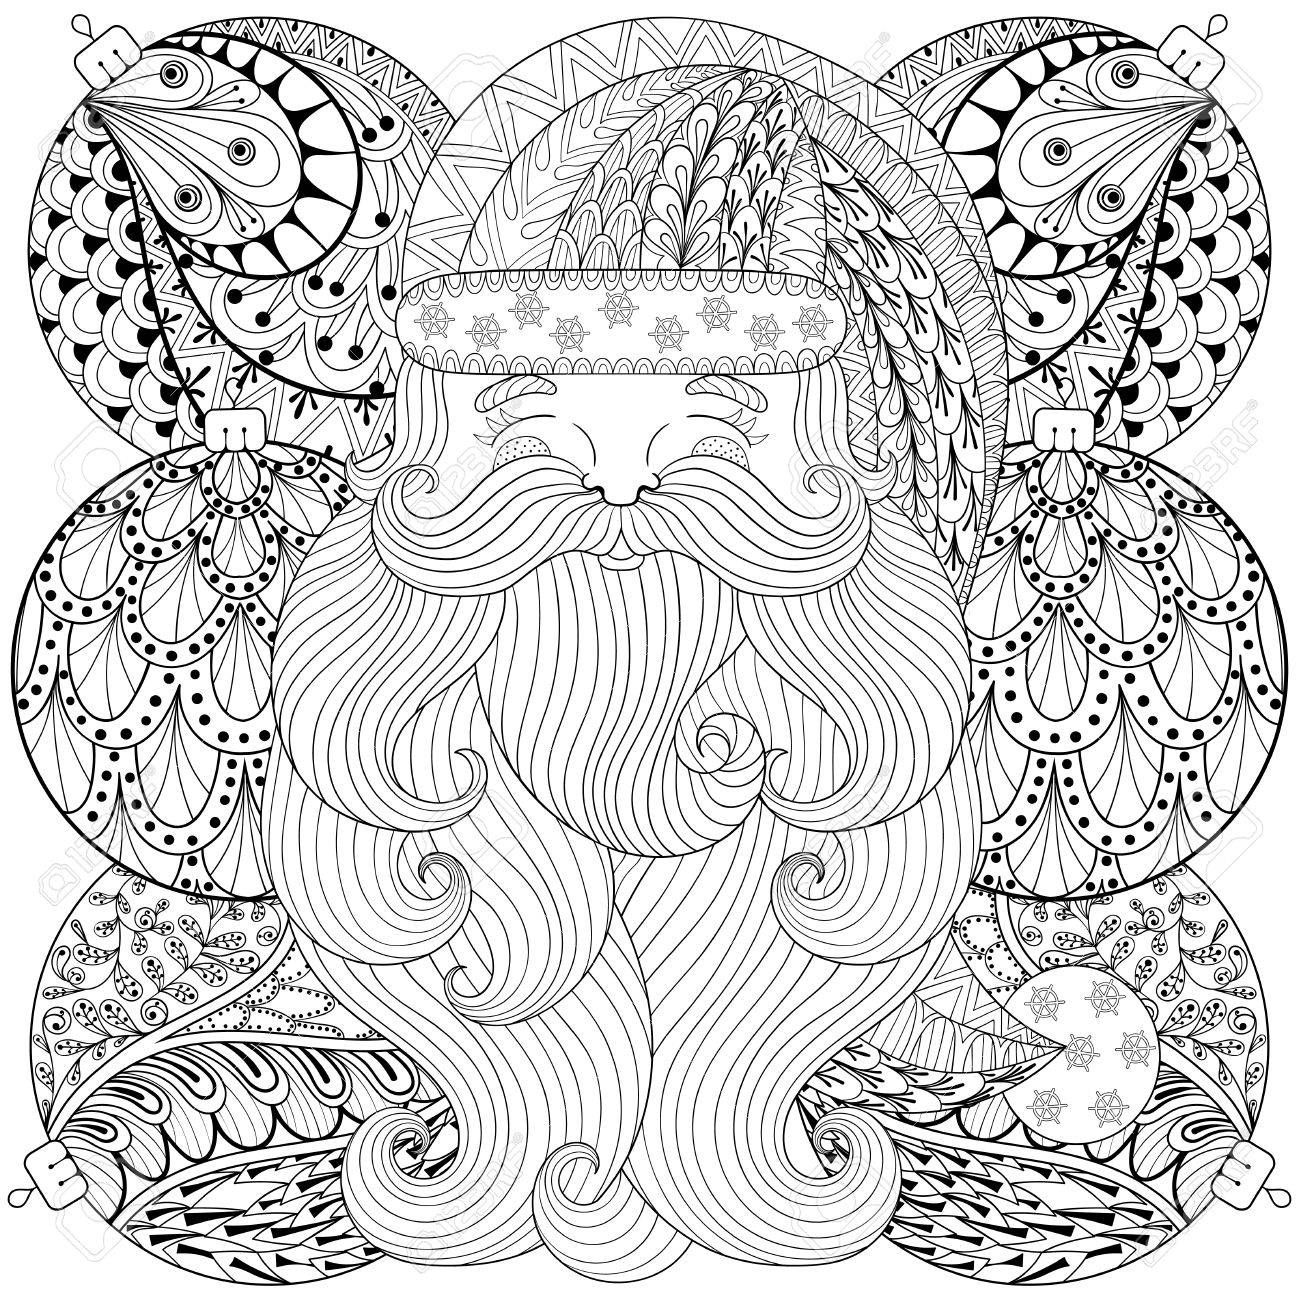 Christmas Coloring Books for Adults | AdultcoloringbookZ